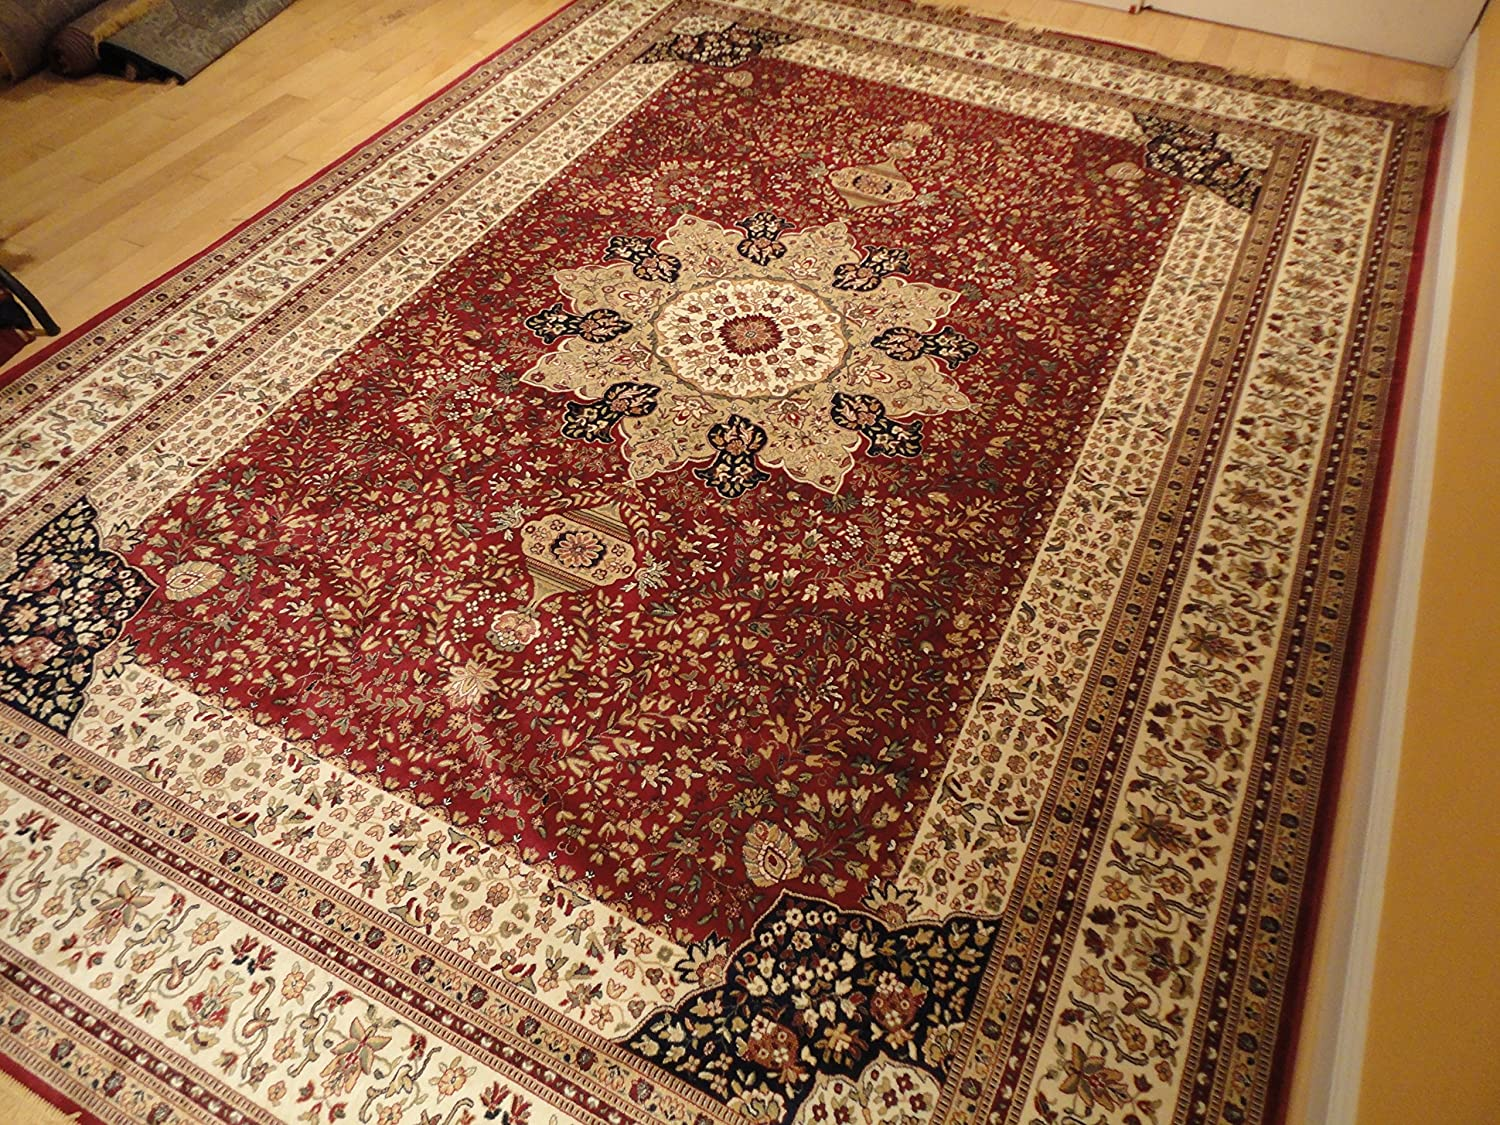 Amazon Luxury Red High Dense Silk Rugs Traditional Large Area 8x12 Living Rooms Rug 8x11 Dining Room Burgundy End Kashan